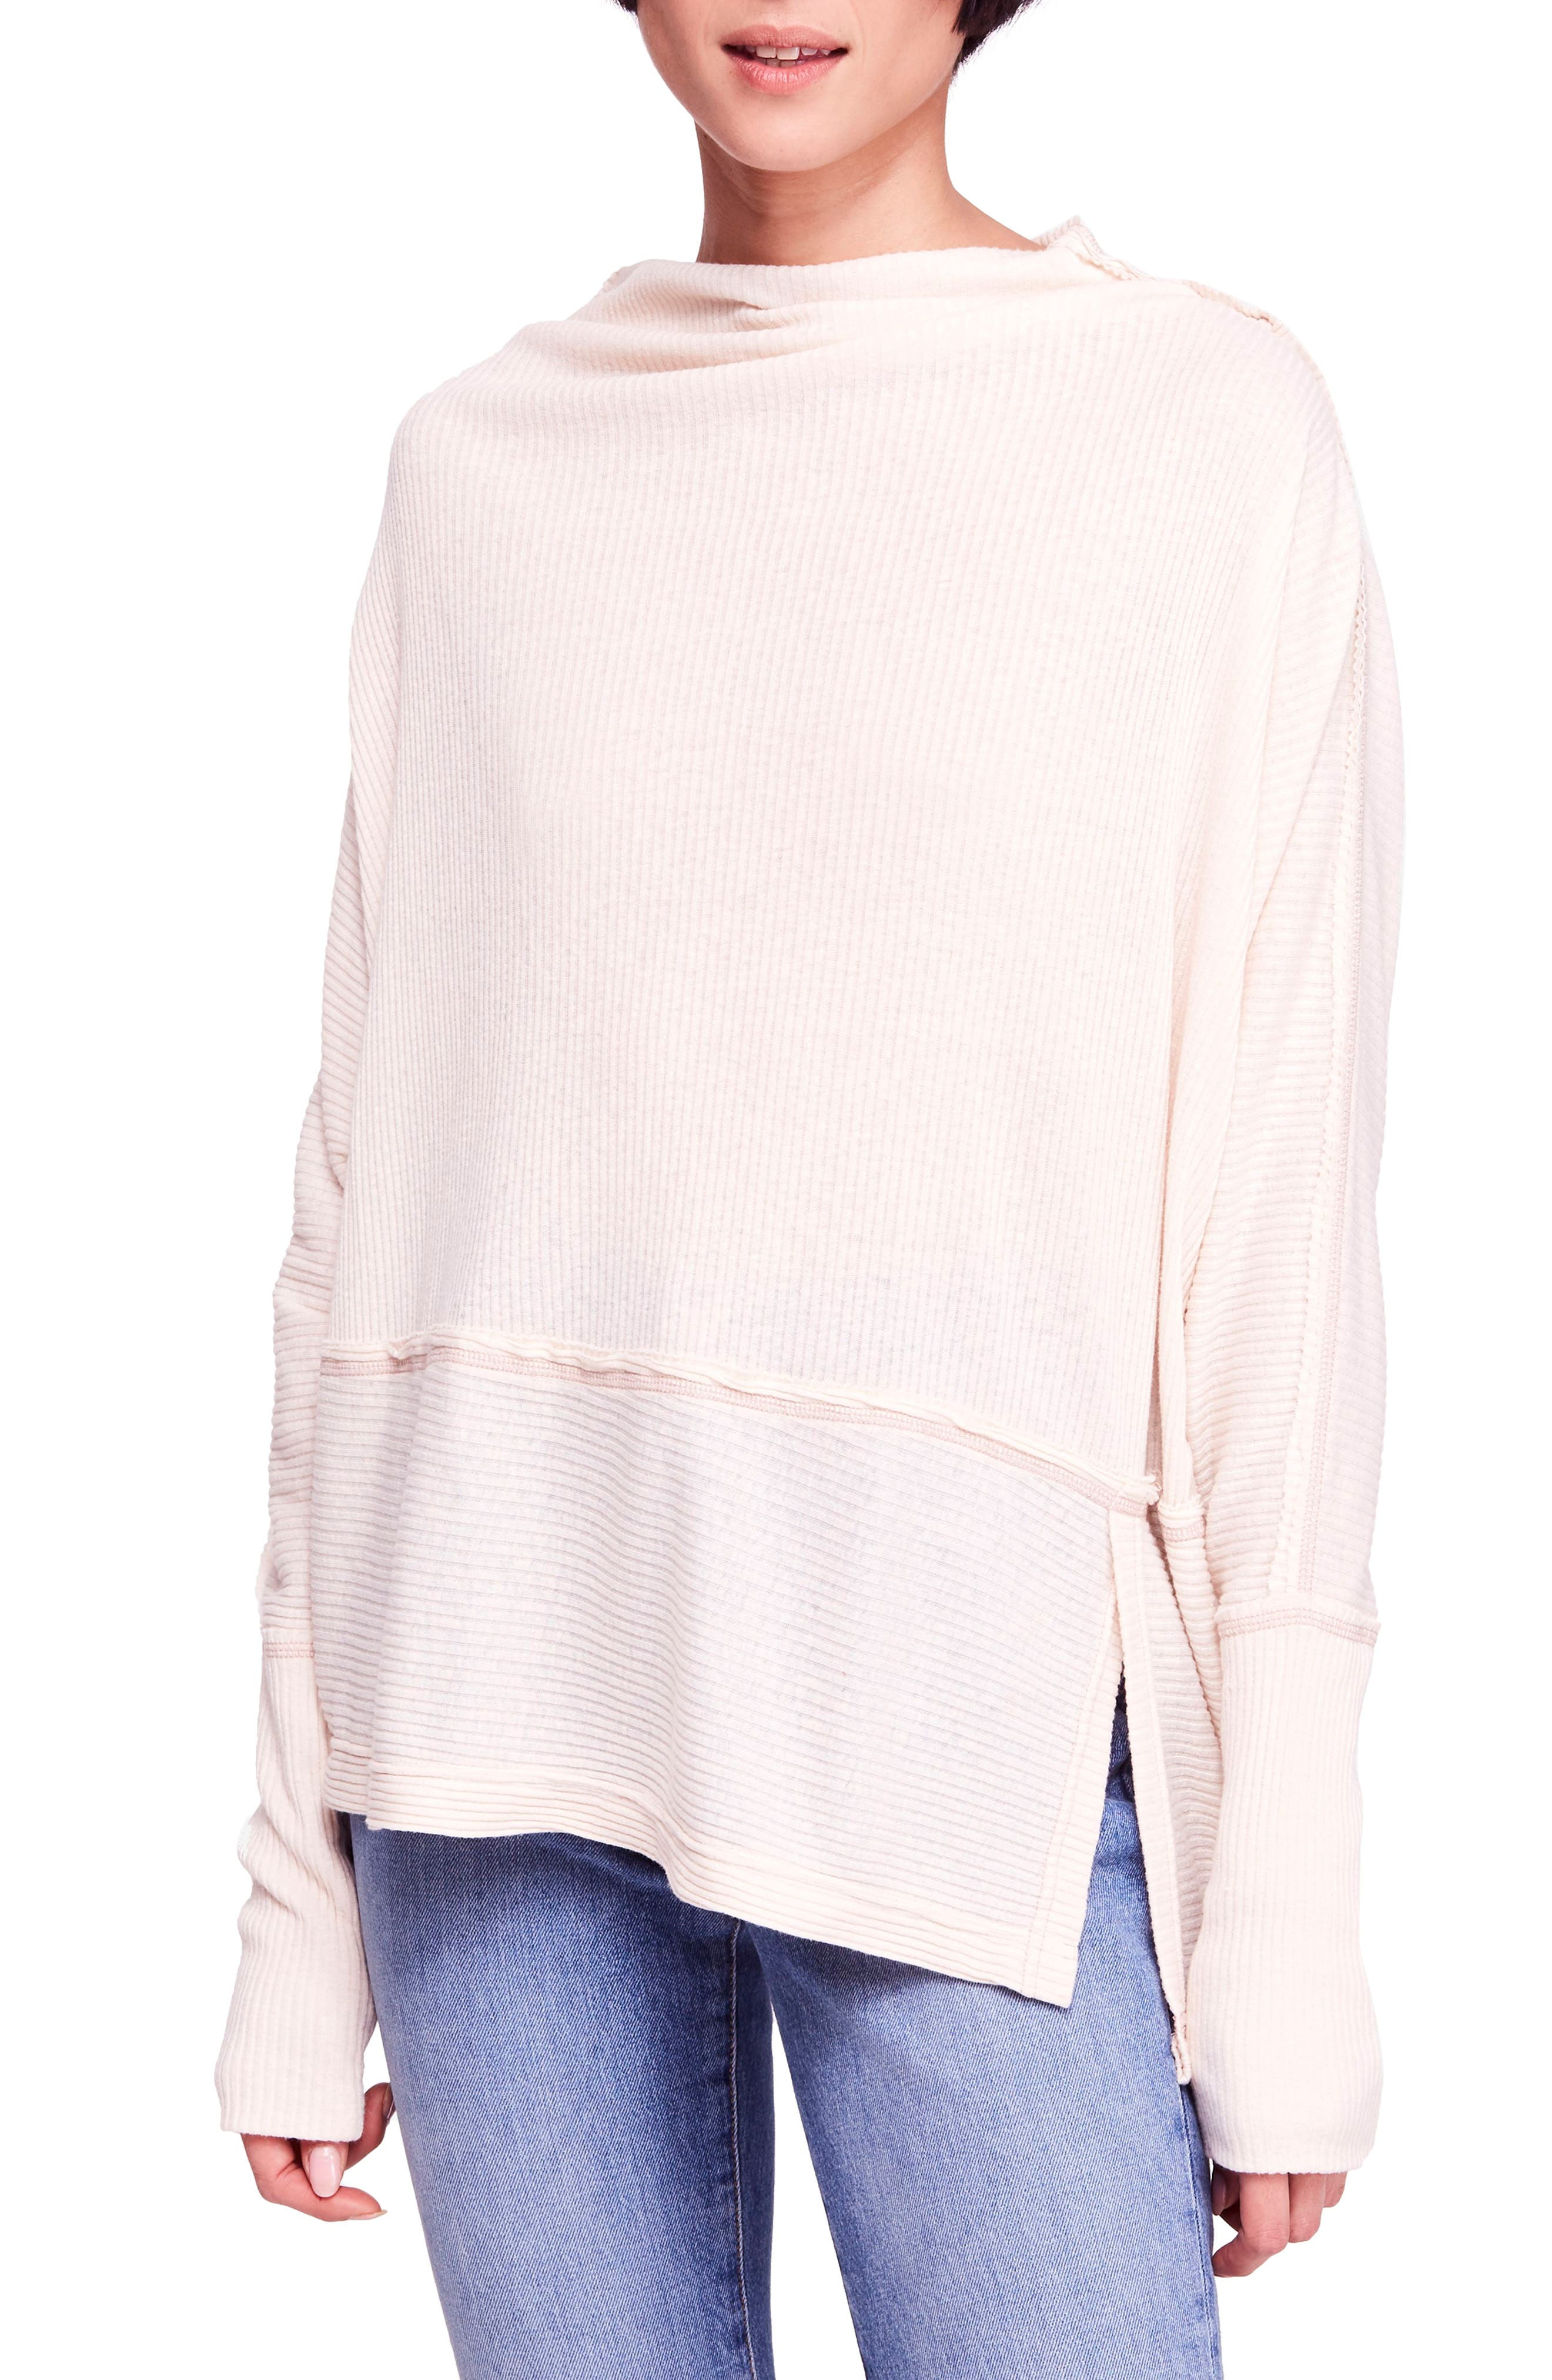 FREE PEOPLE, Londontown Thermal Top, Main thumbnail 1, color, BEIGE